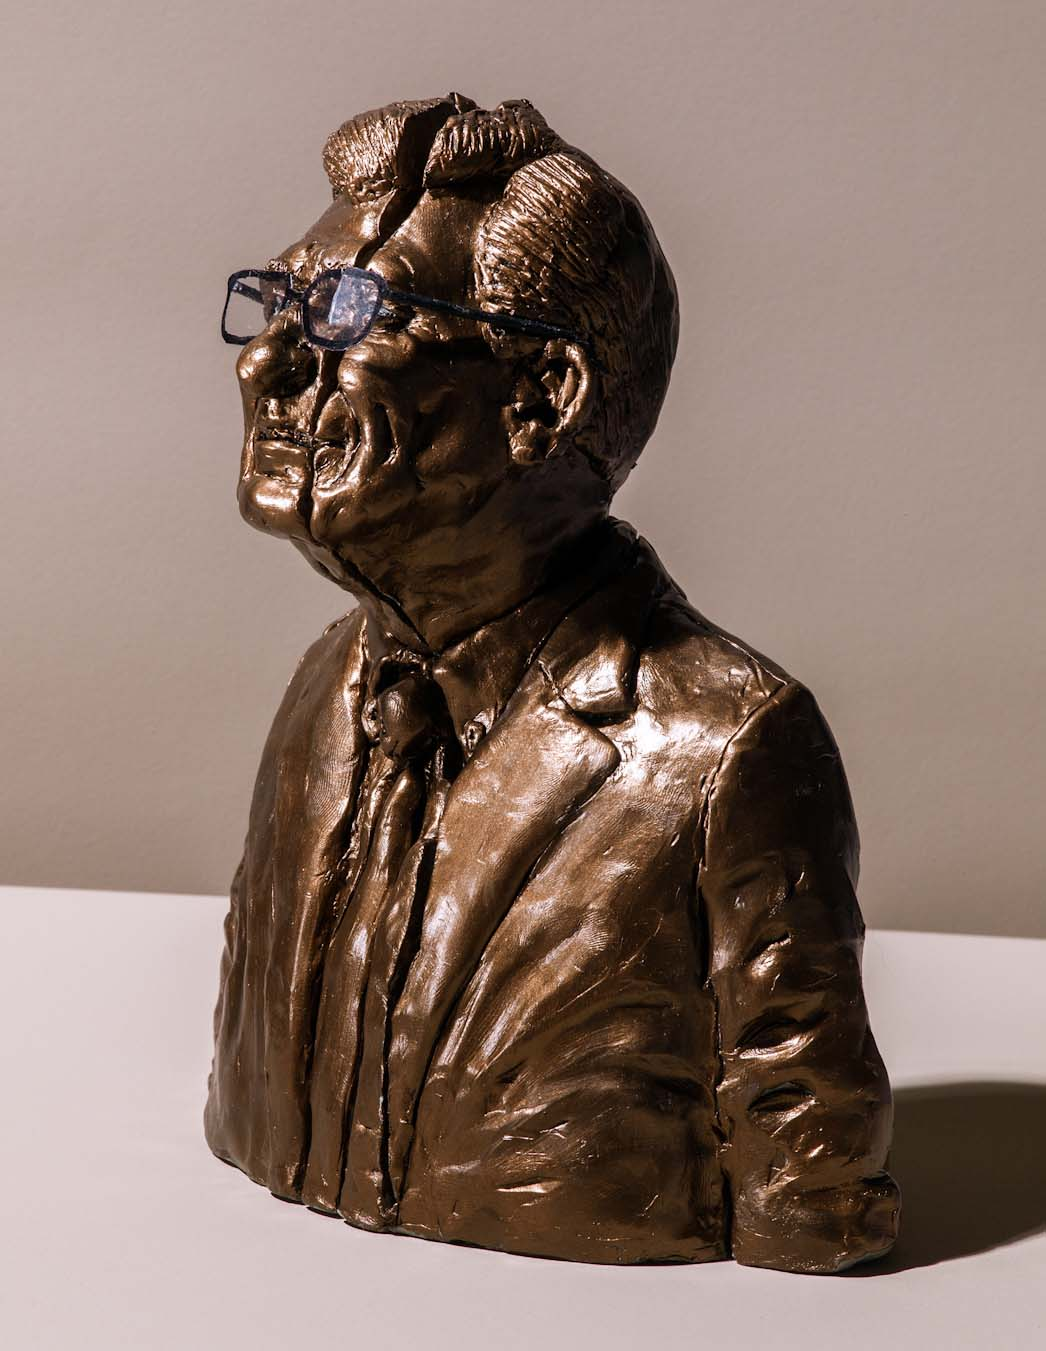 Joe Paterno #2 in gold and sliced (photo by Grant Cornett for The New Yorker)